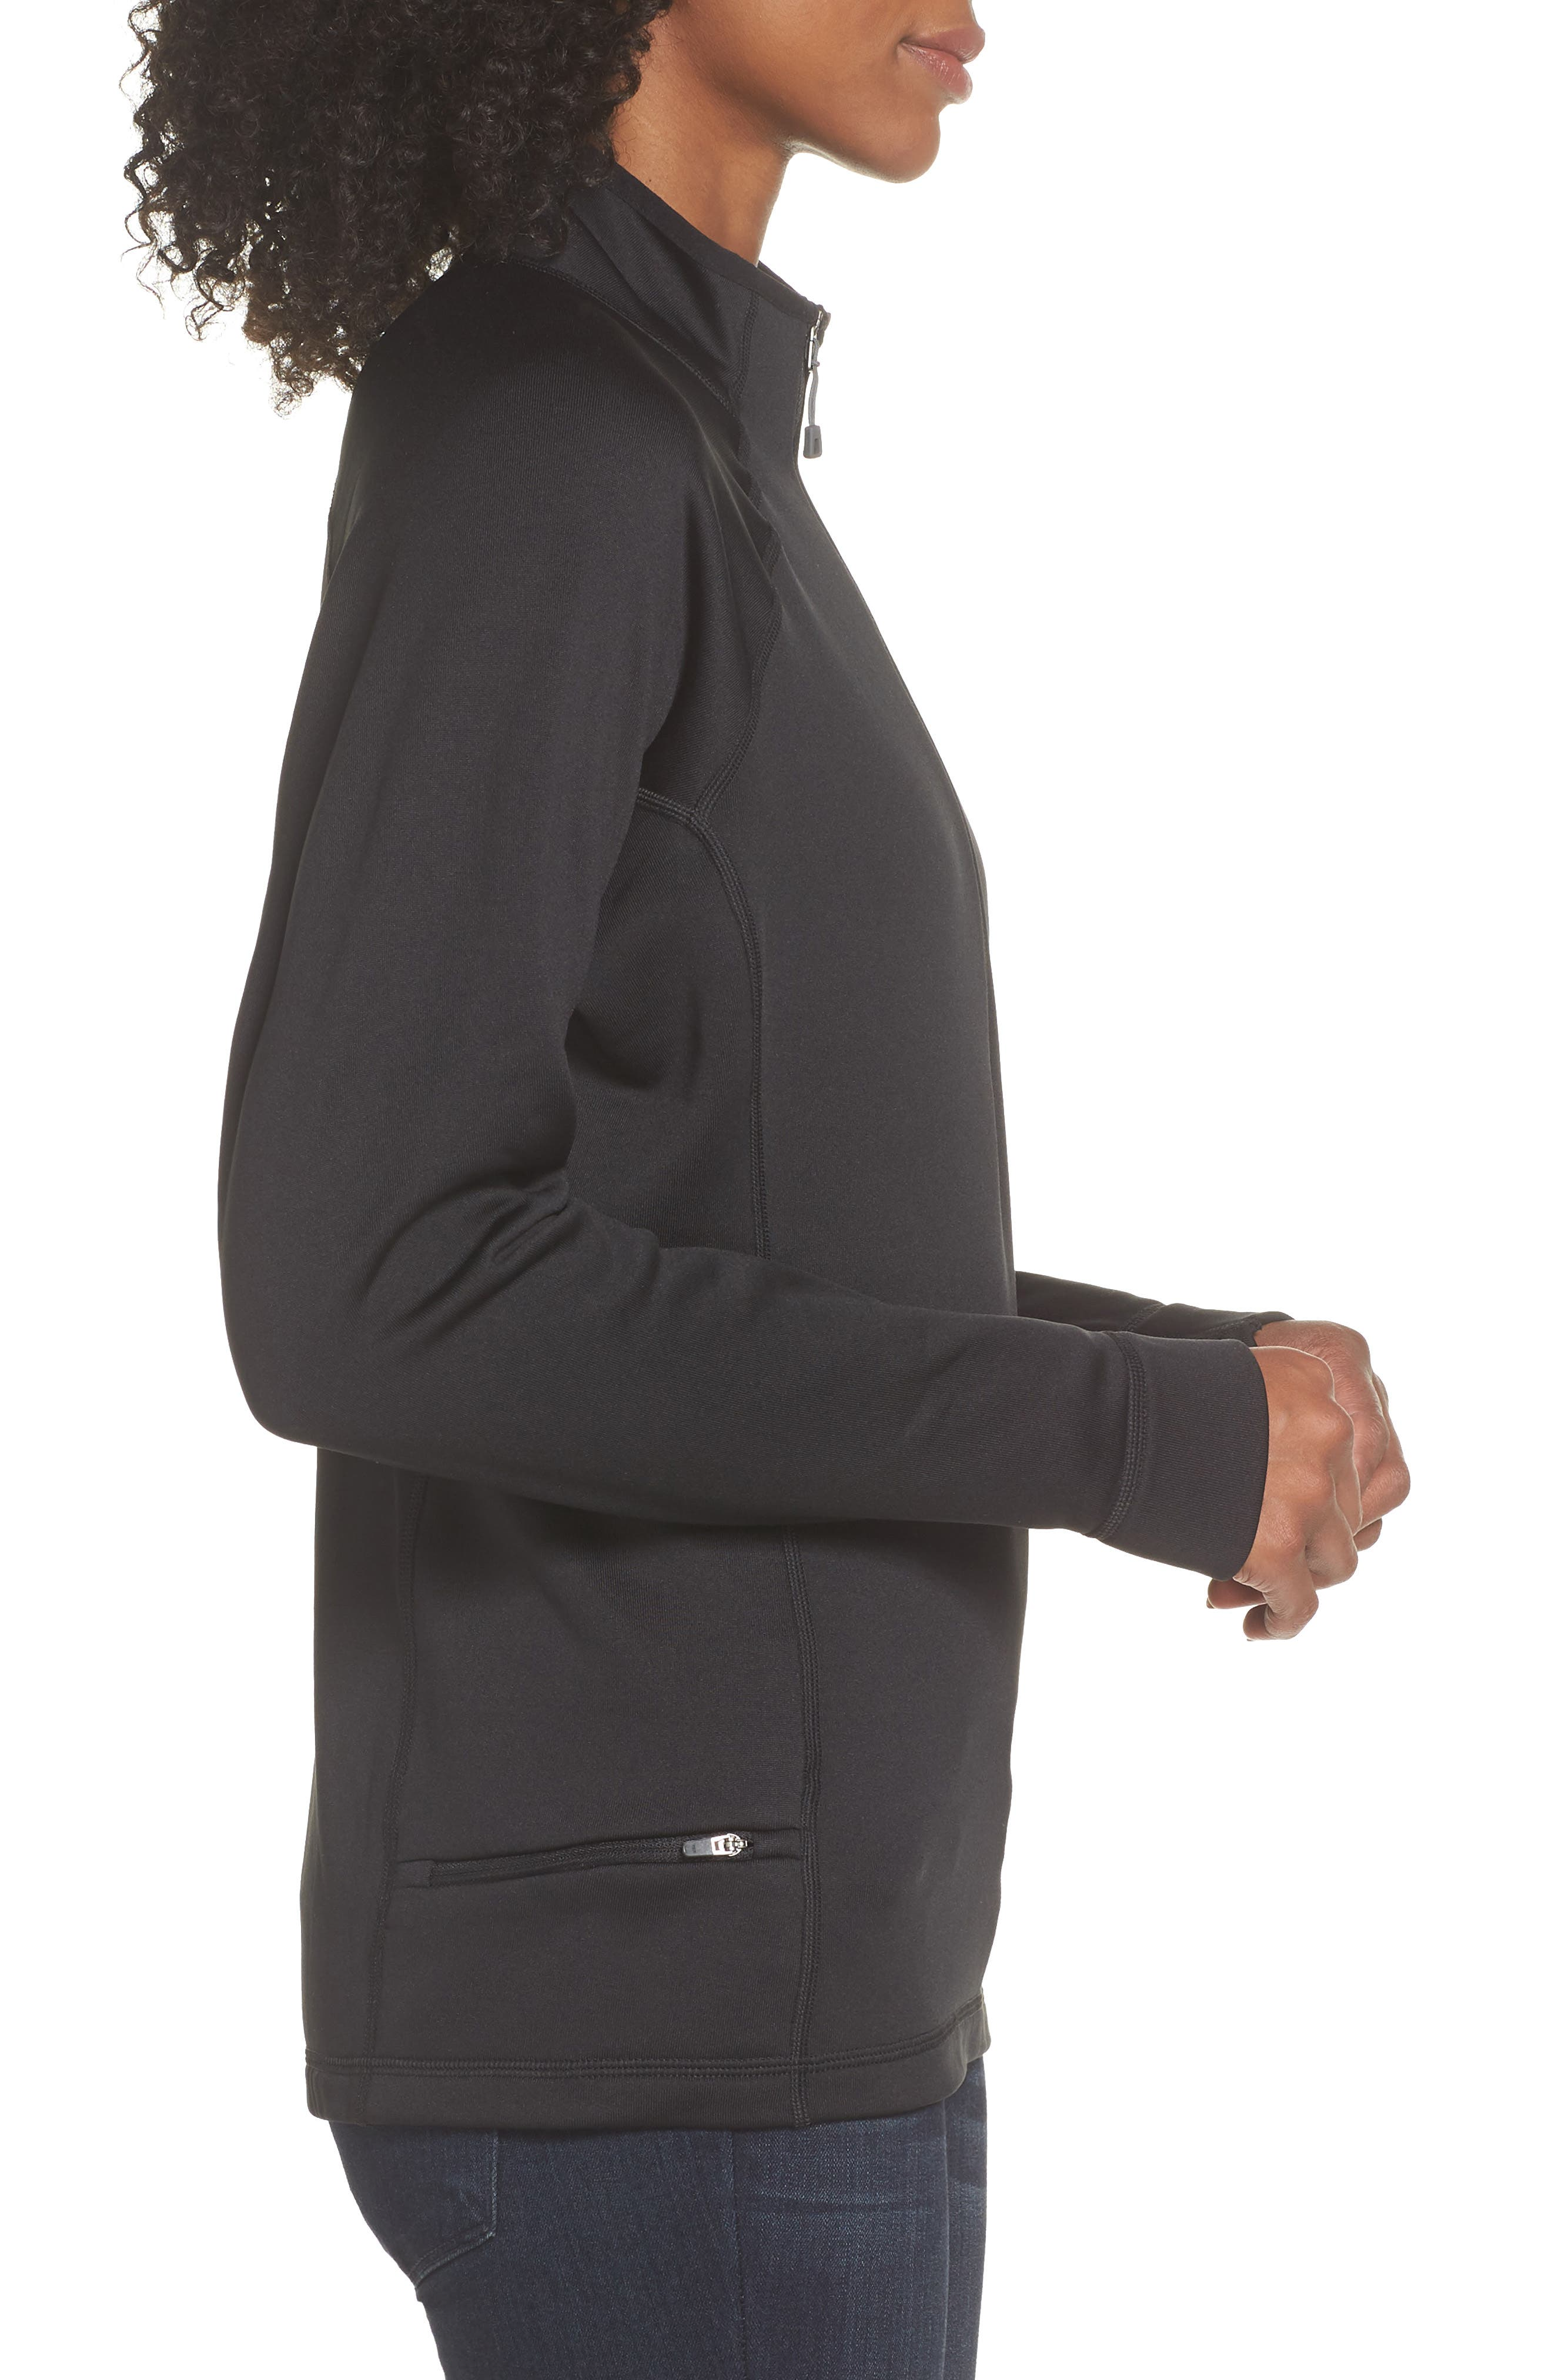 Crosstrek Quarter Zip Jacket,                             Alternate thumbnail 3, color,                             001